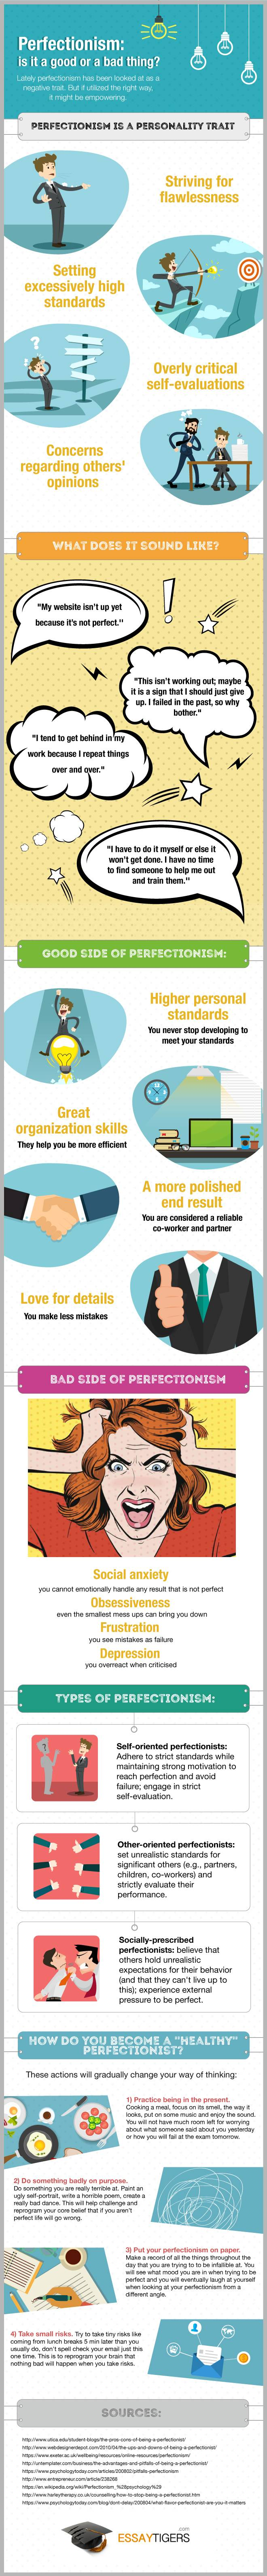 perfectionism infographic